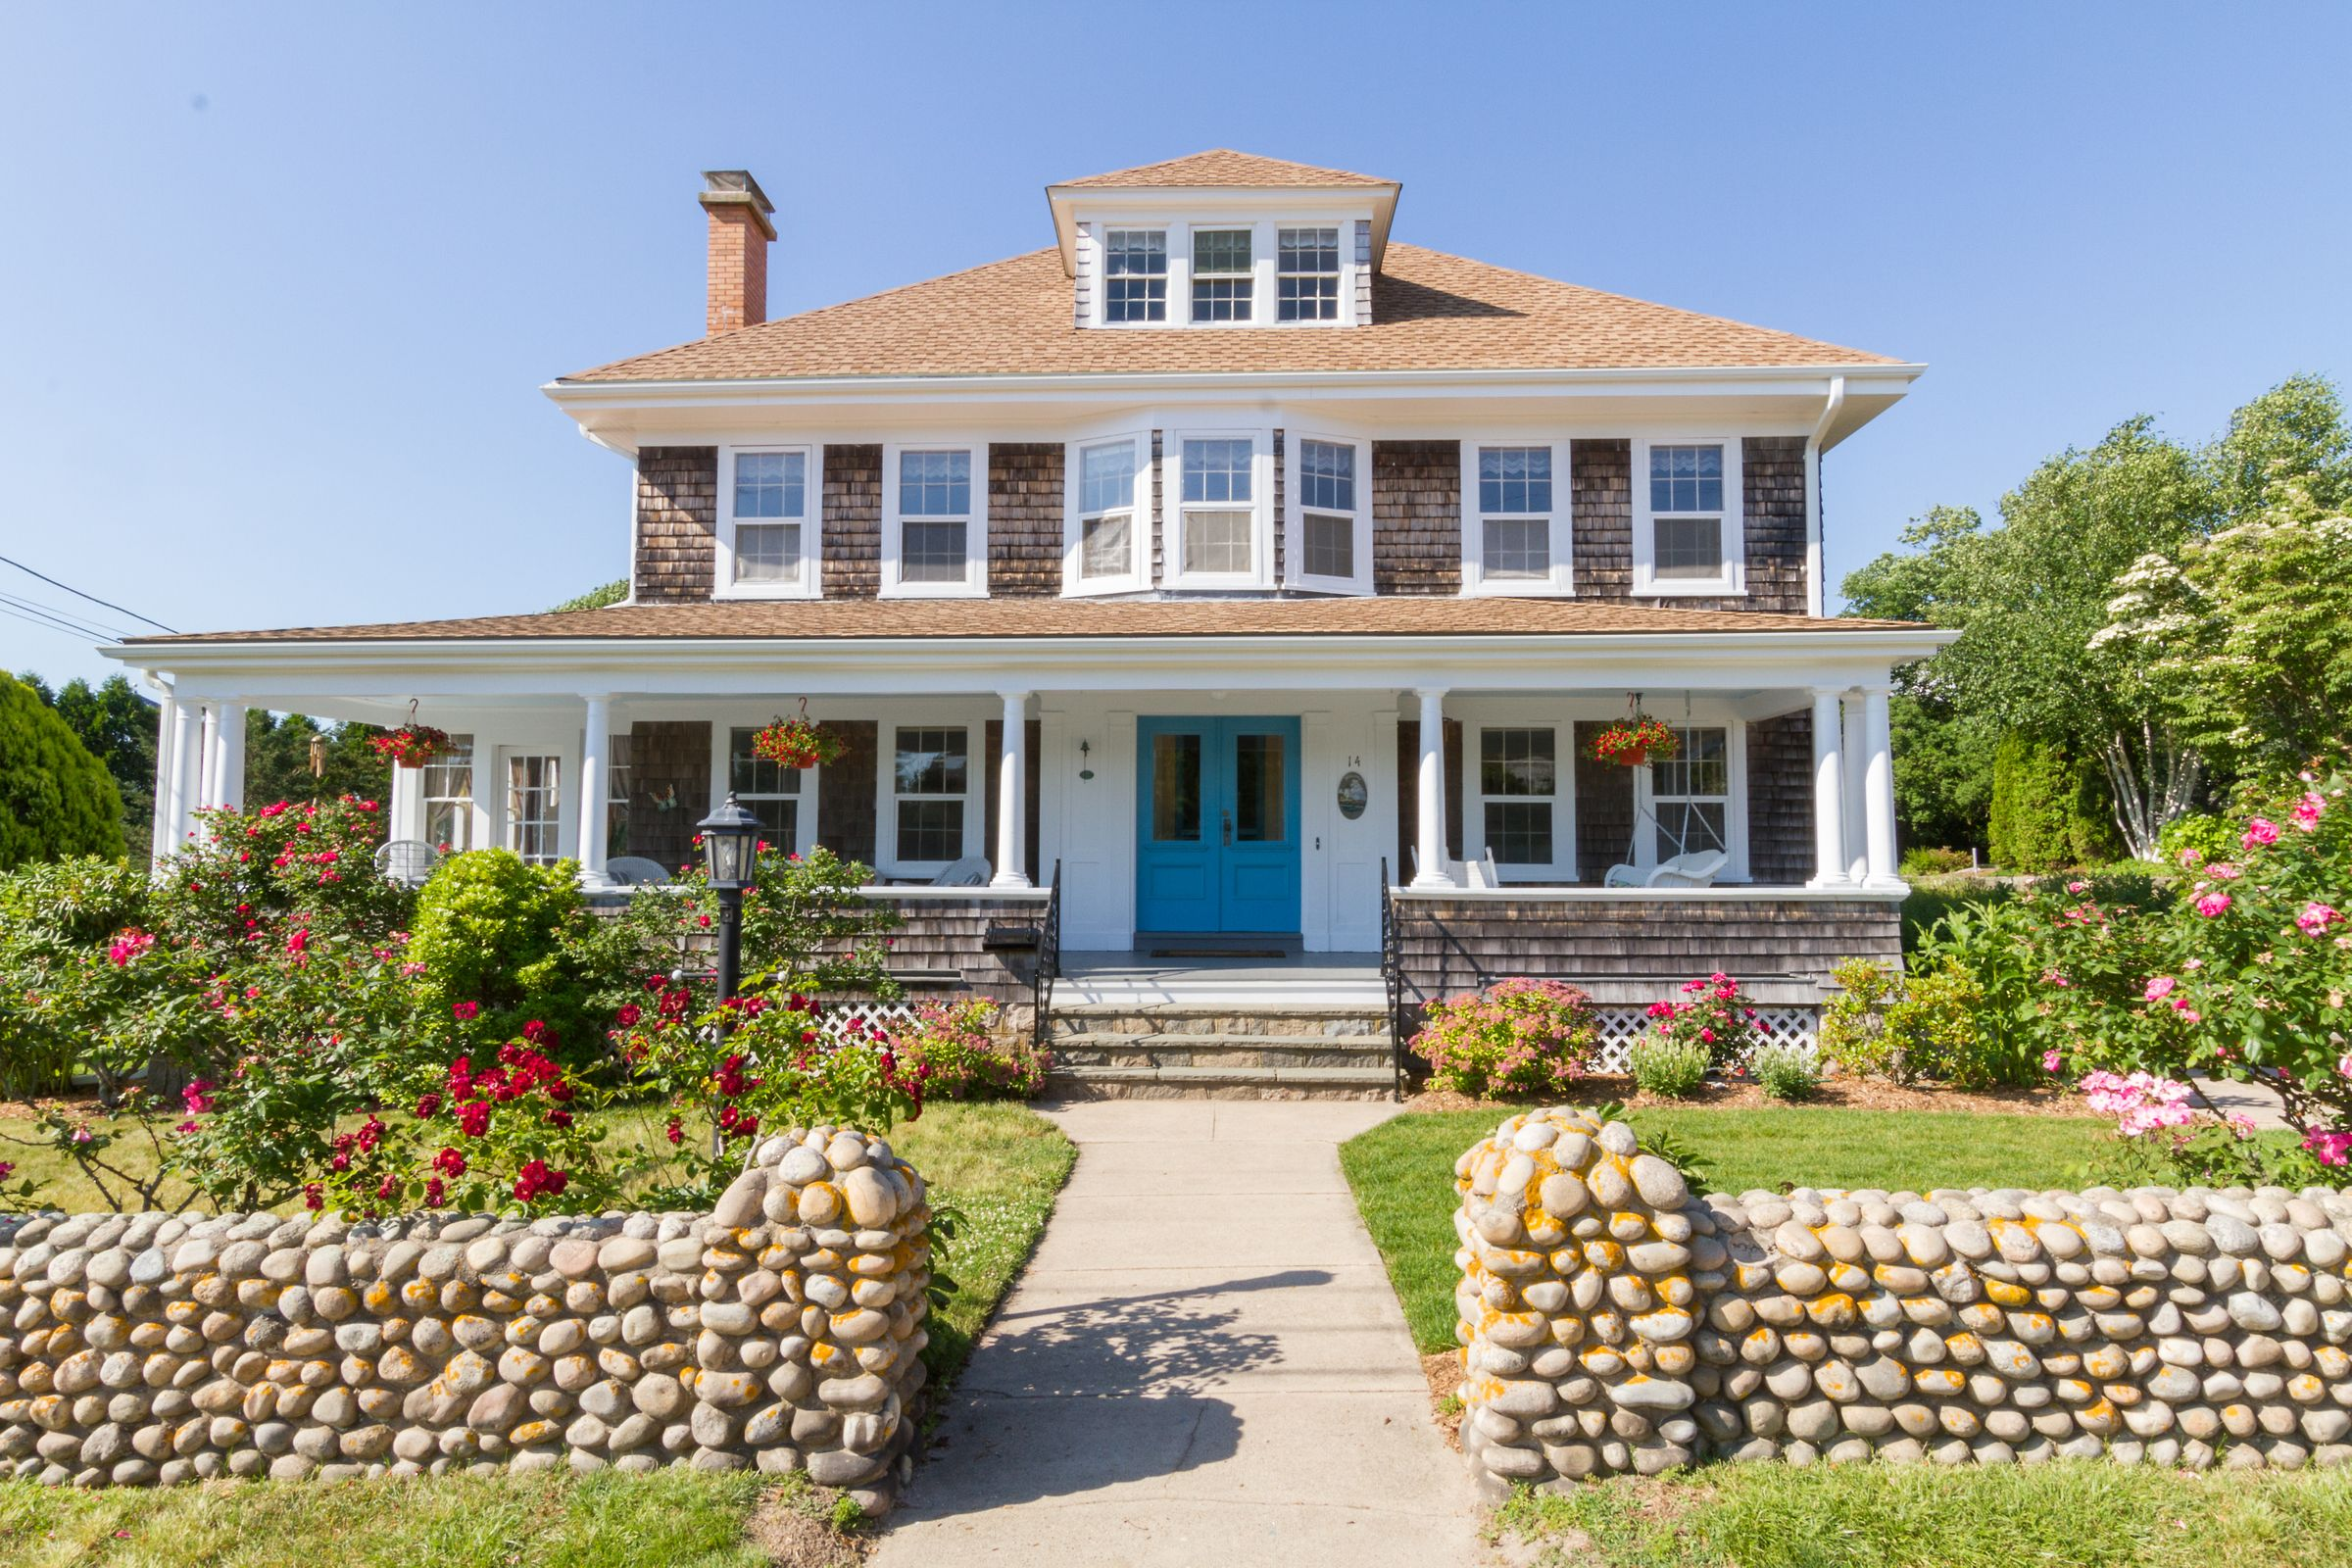 Home on Plimpton Road in Westerly sells for $1.95 million